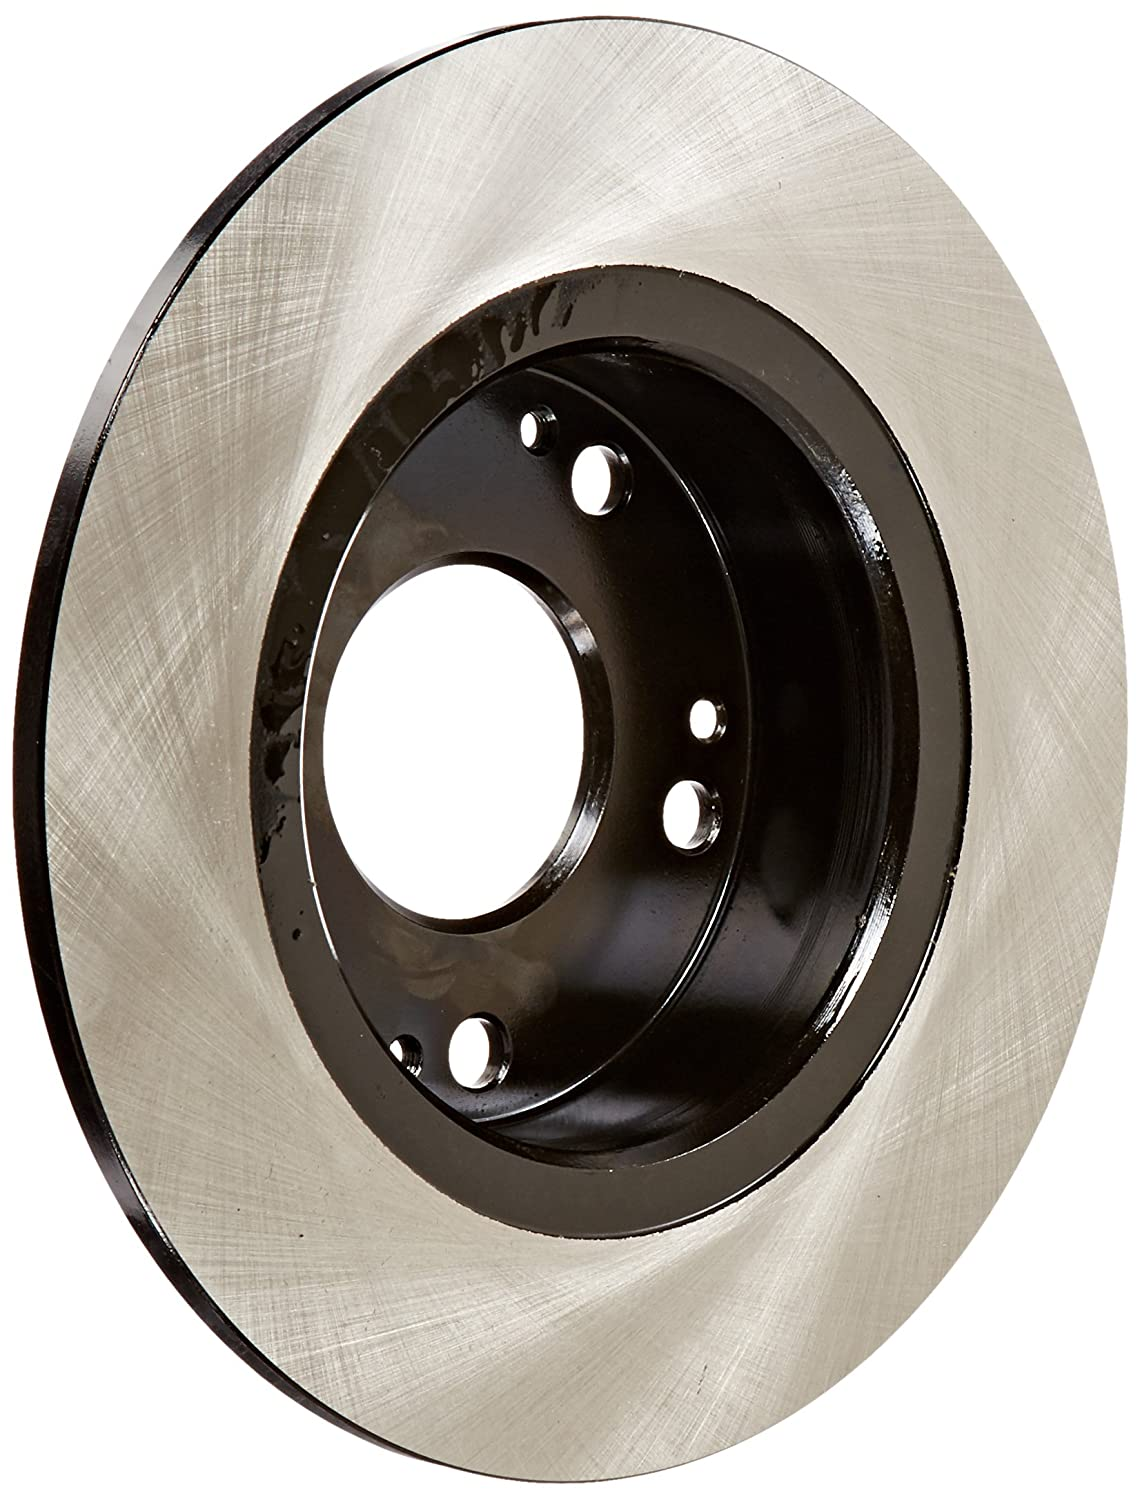 Centric Parts 120.40055 Premium Brake Rotor with E-Coating